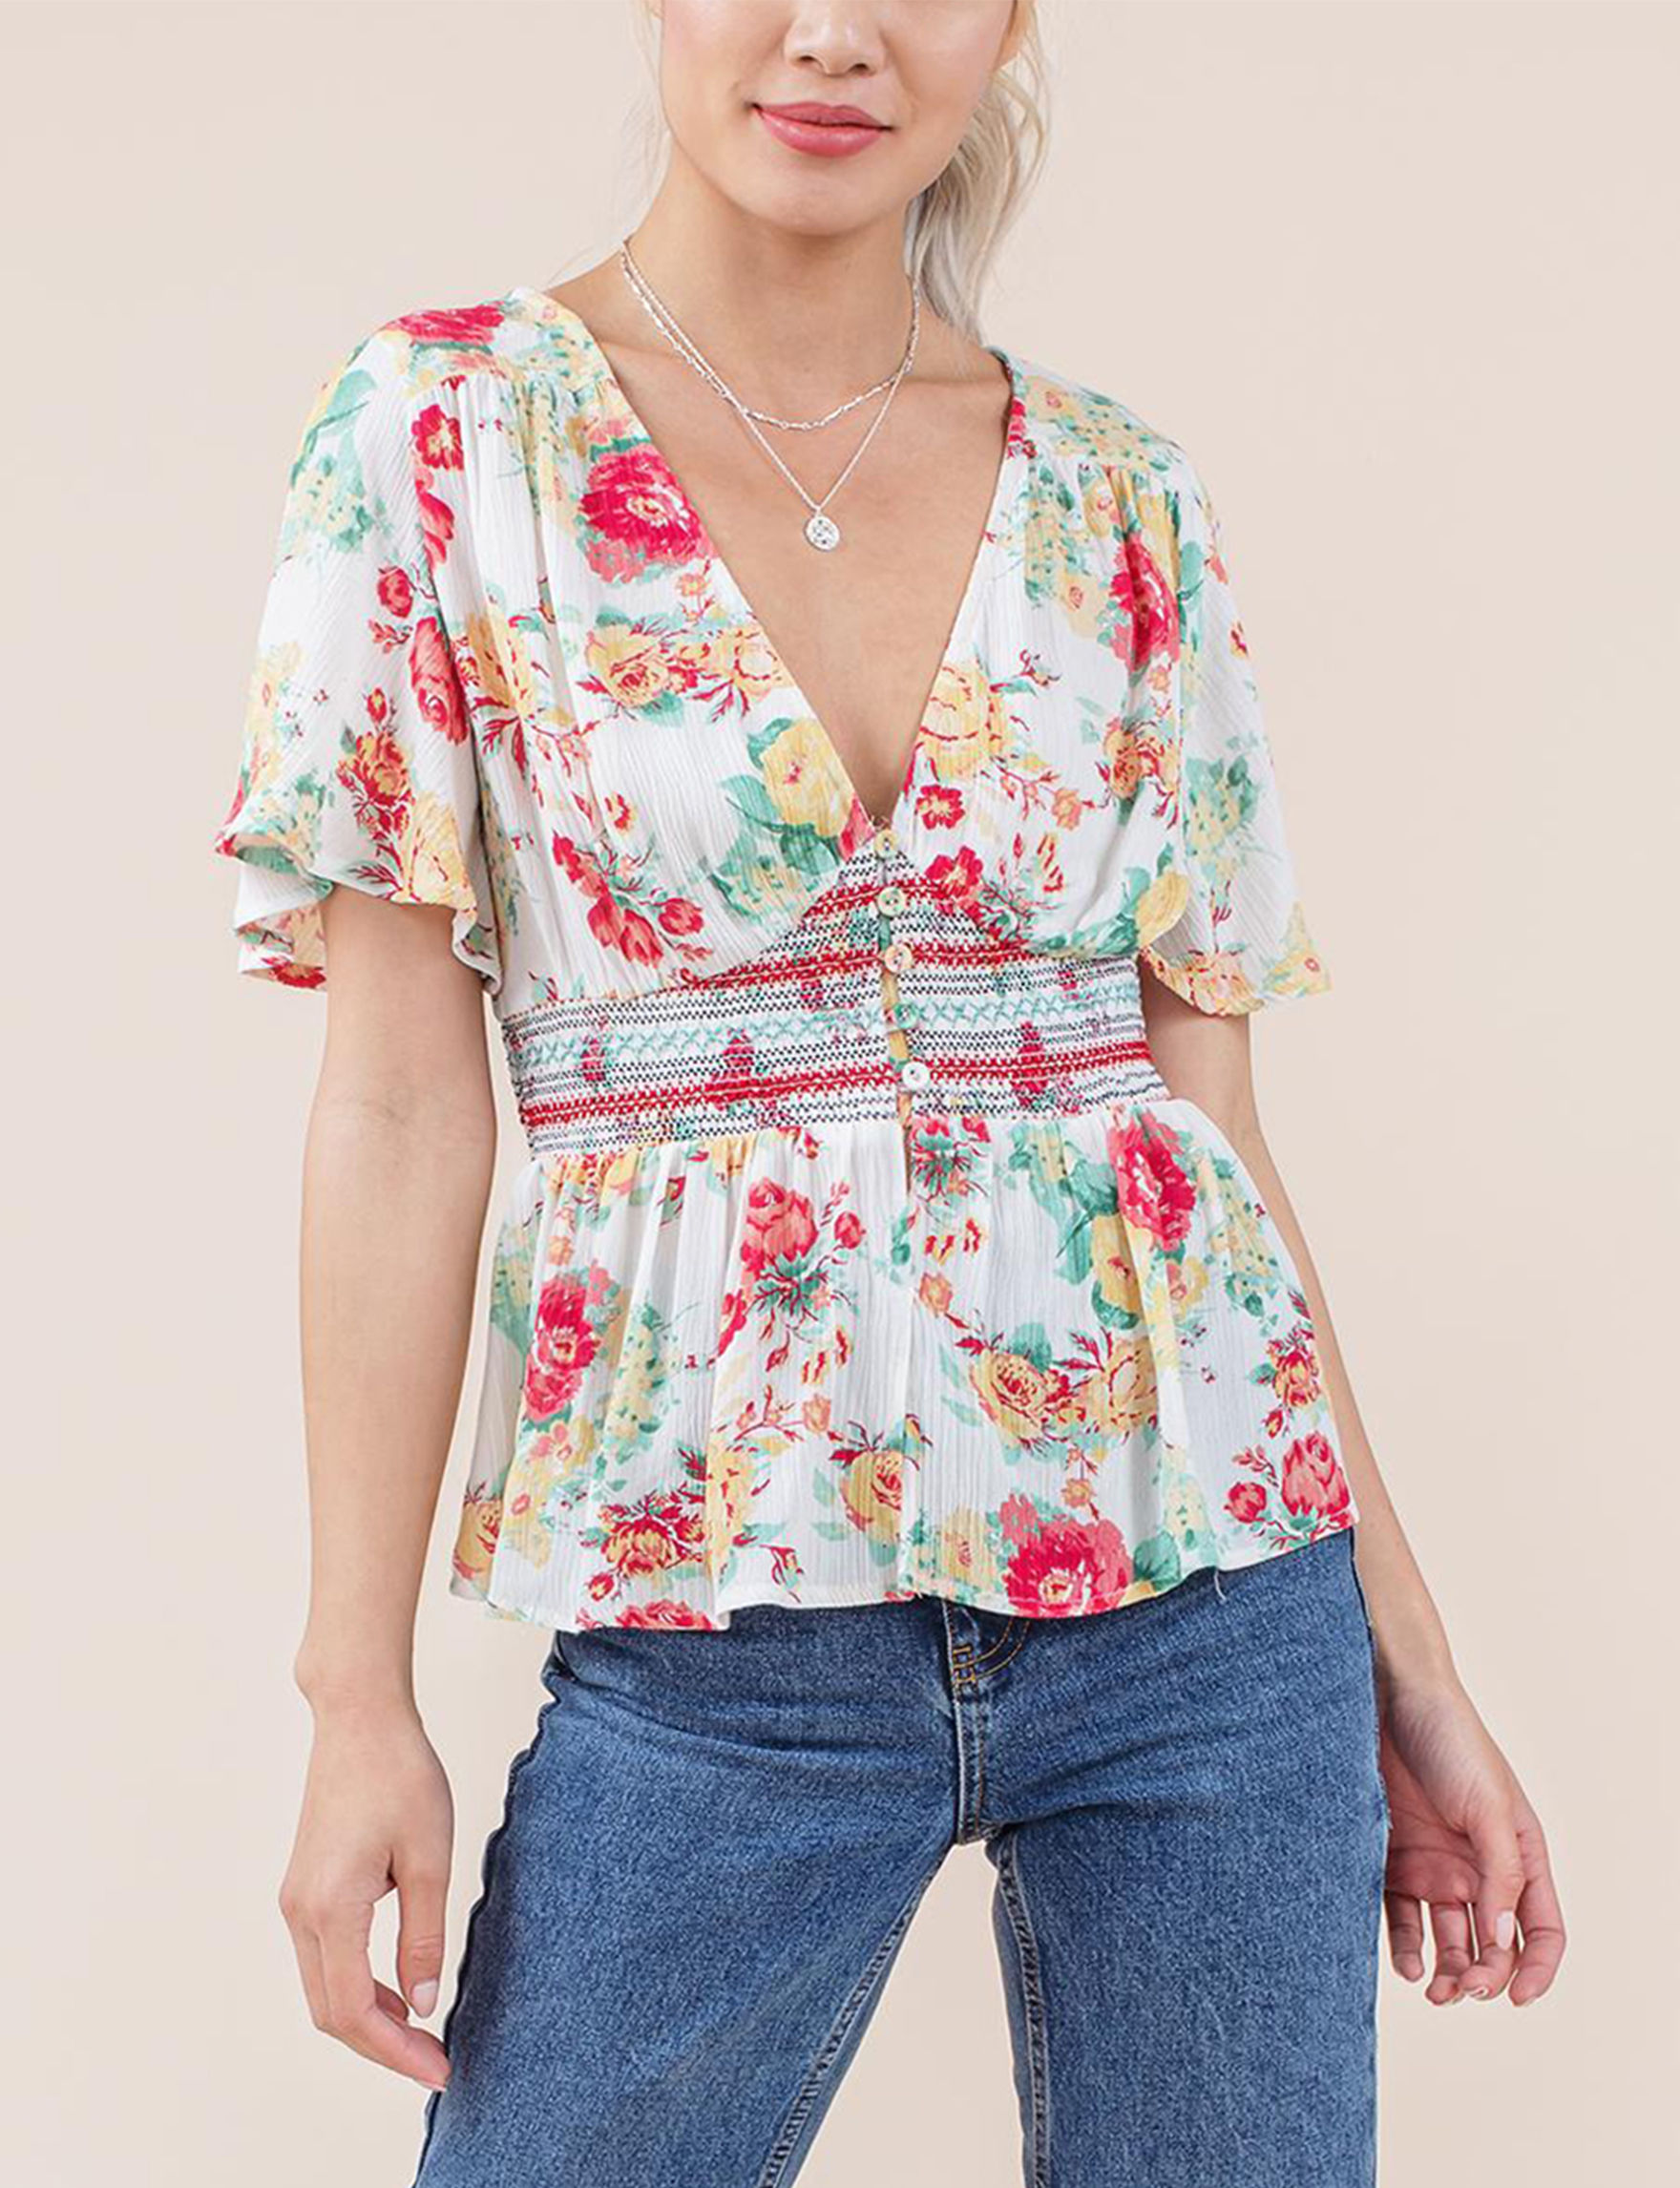 C + J Collections Ivory Floral Shirts & Blouses